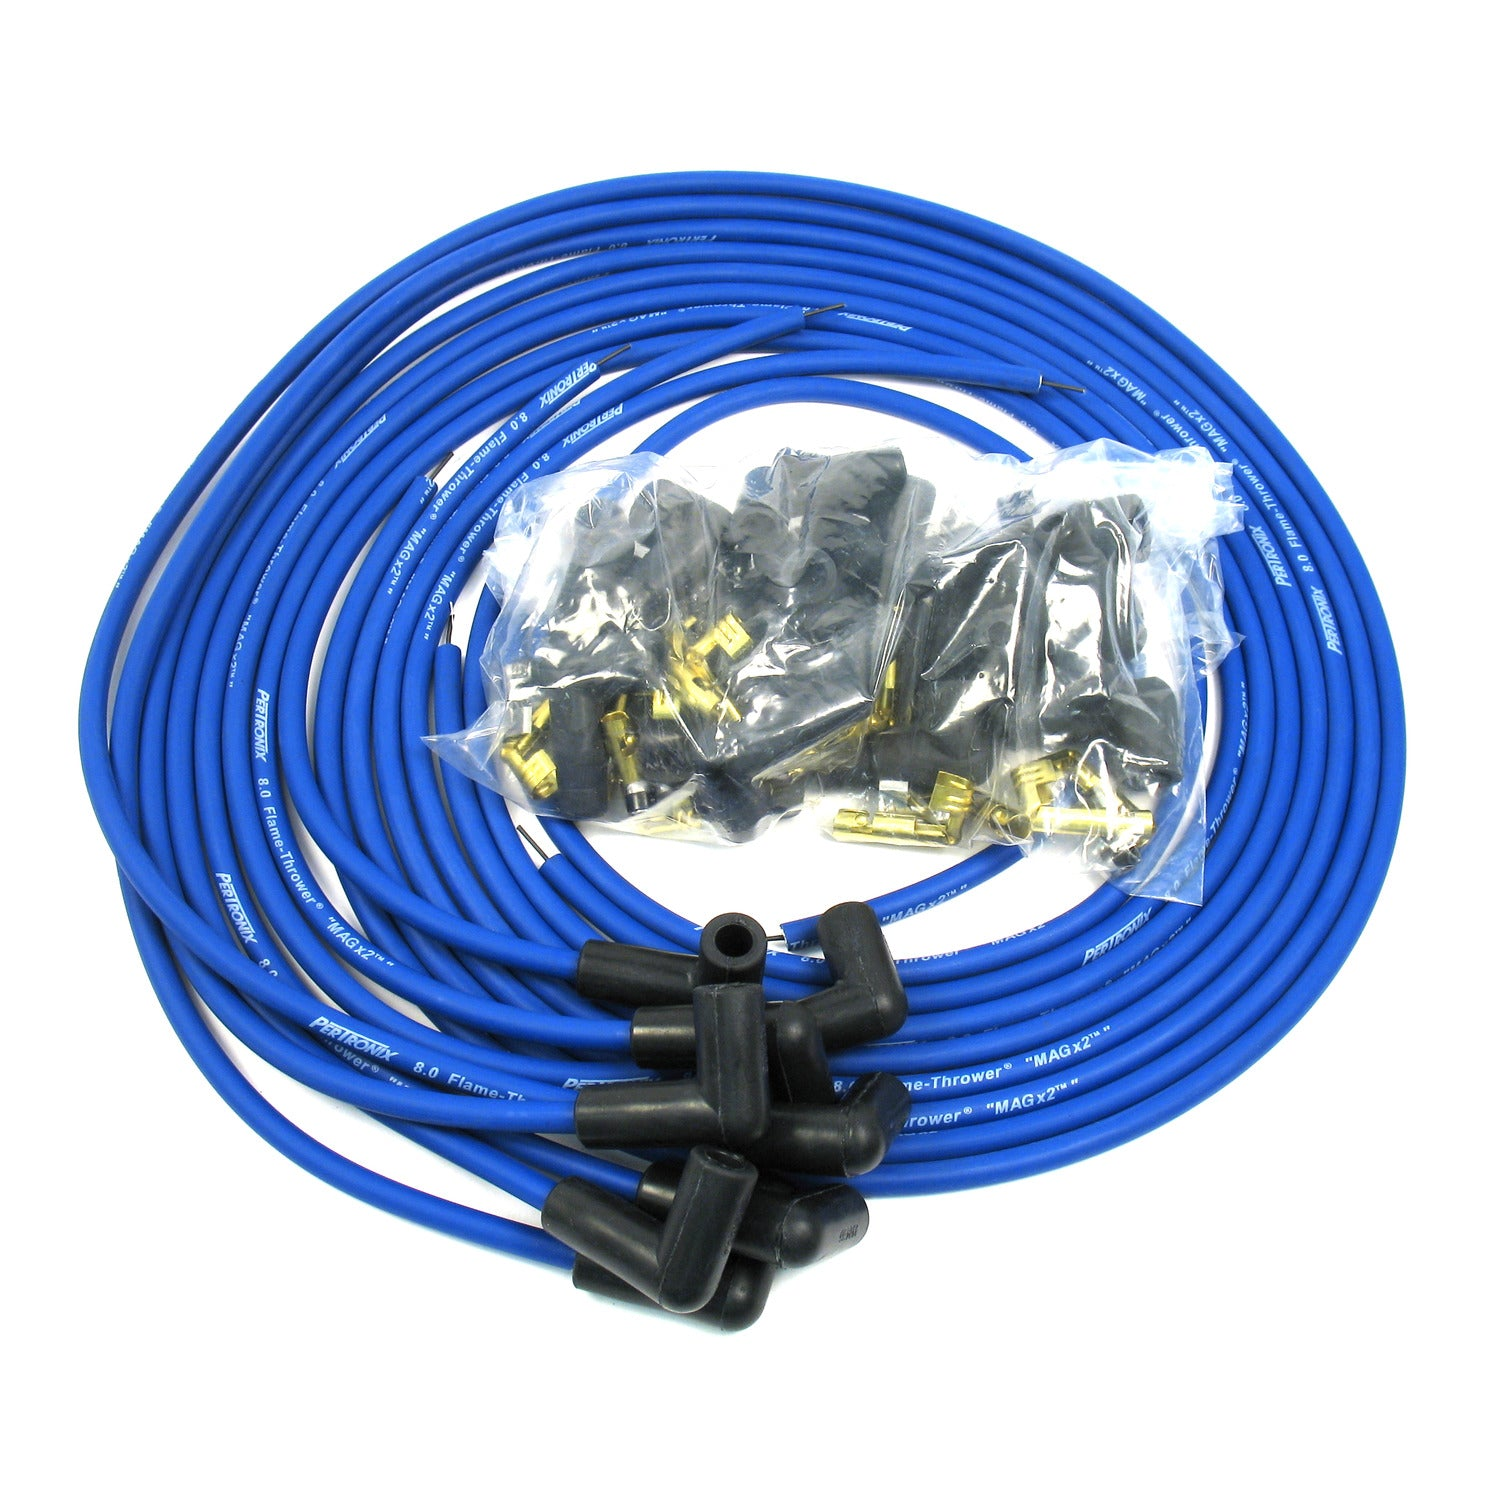 PerTronix 808390 Flame-Thrower Spark Plug Wires 8 cyl 8mm Universal 90 Degree Blue